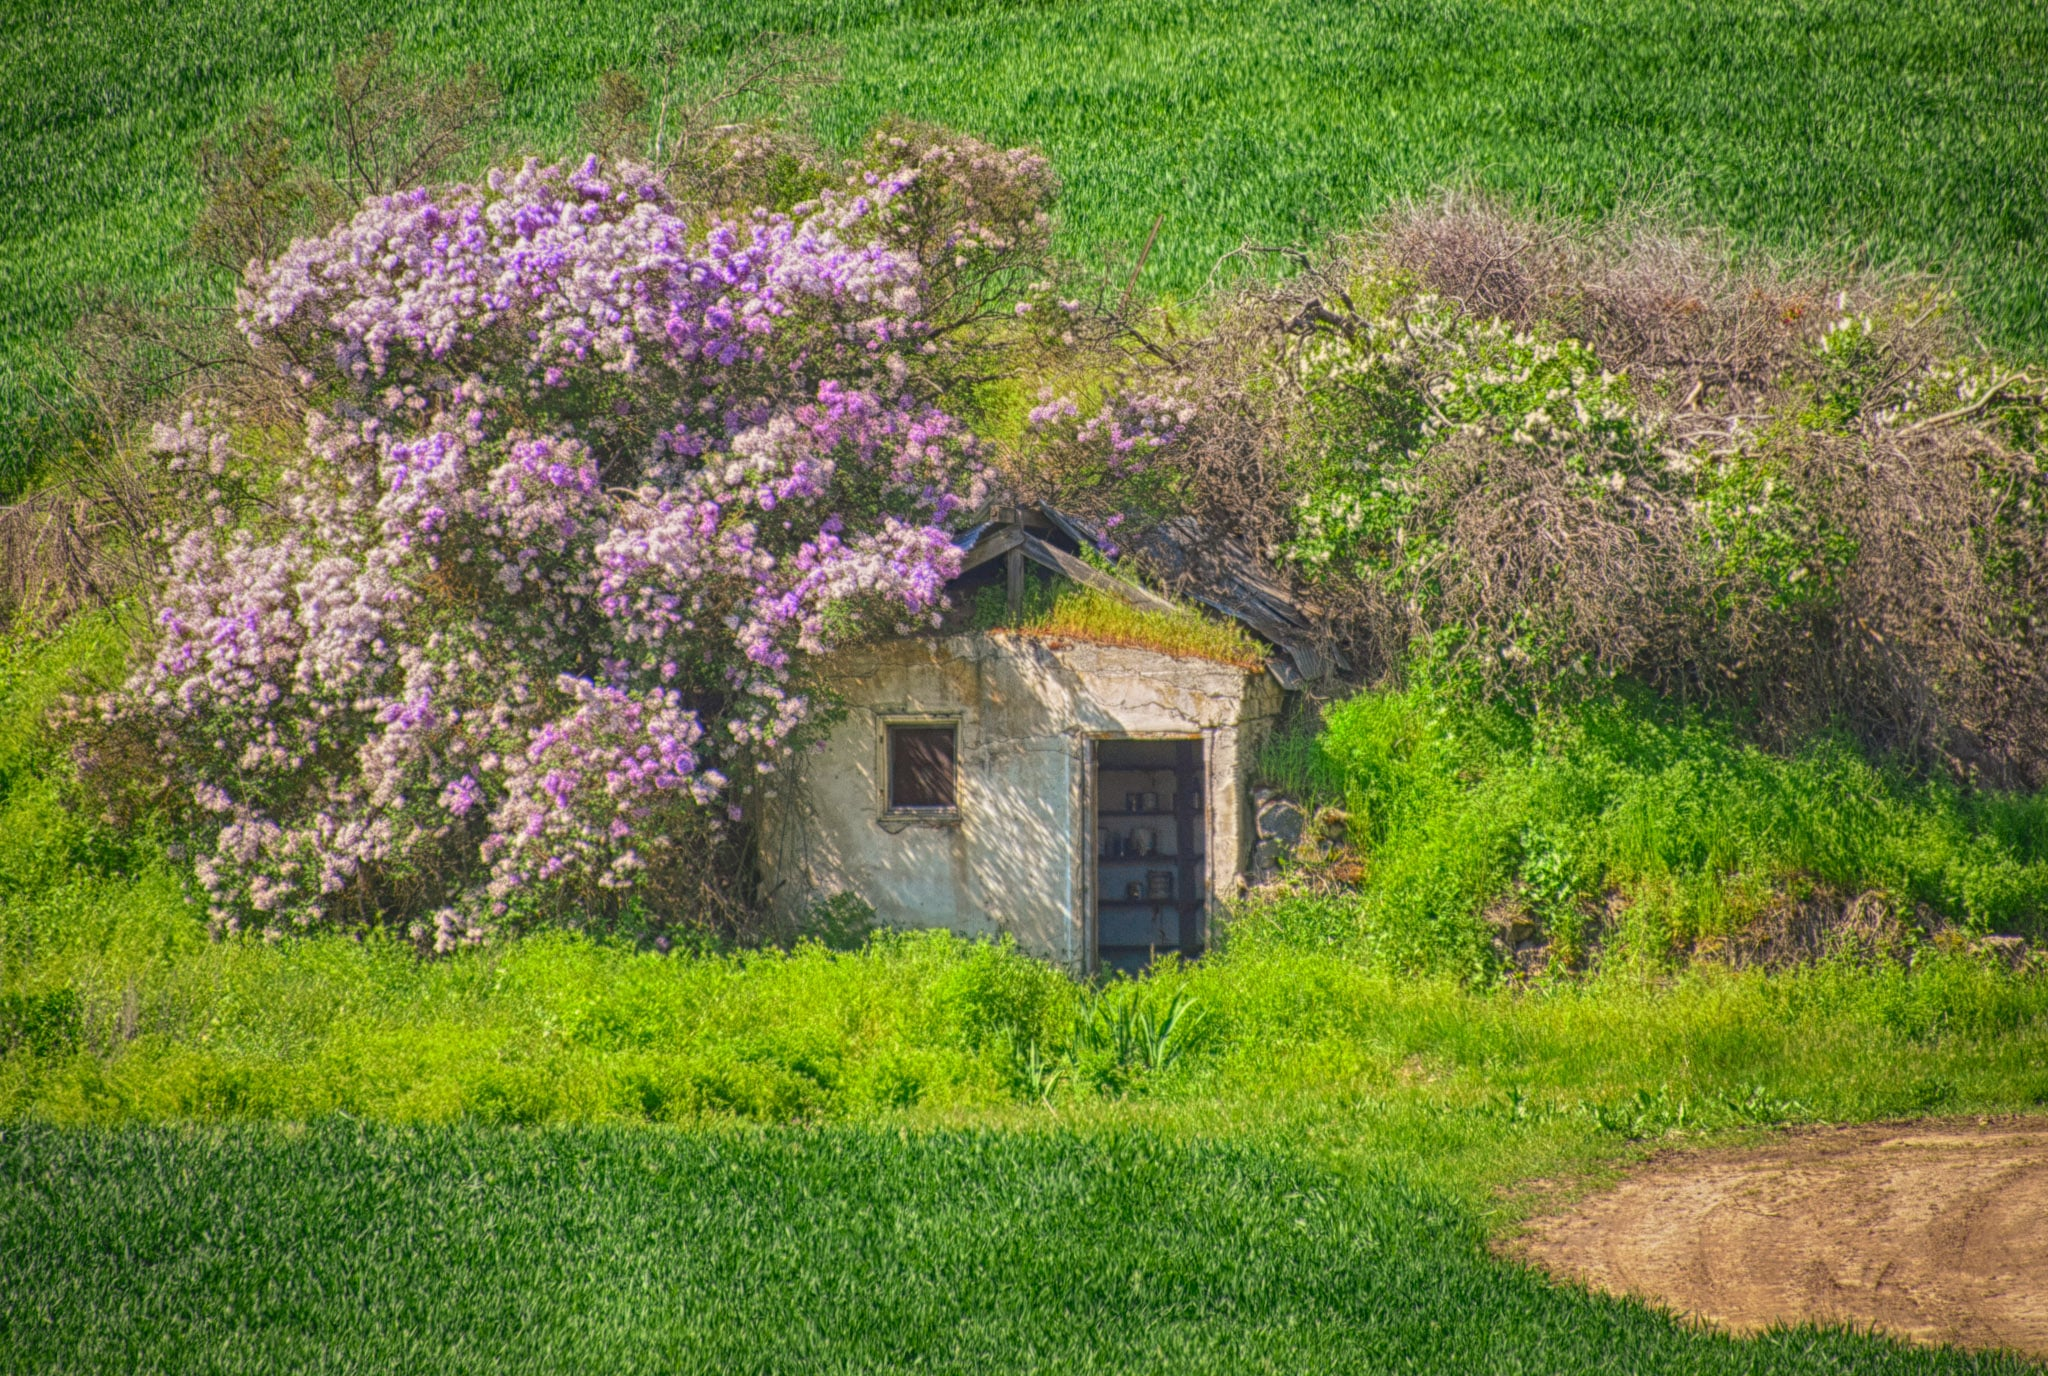 Lilac bushes almost hide a run-down out-building in a field in the Palouse region of eastern Washington, near Colfax.